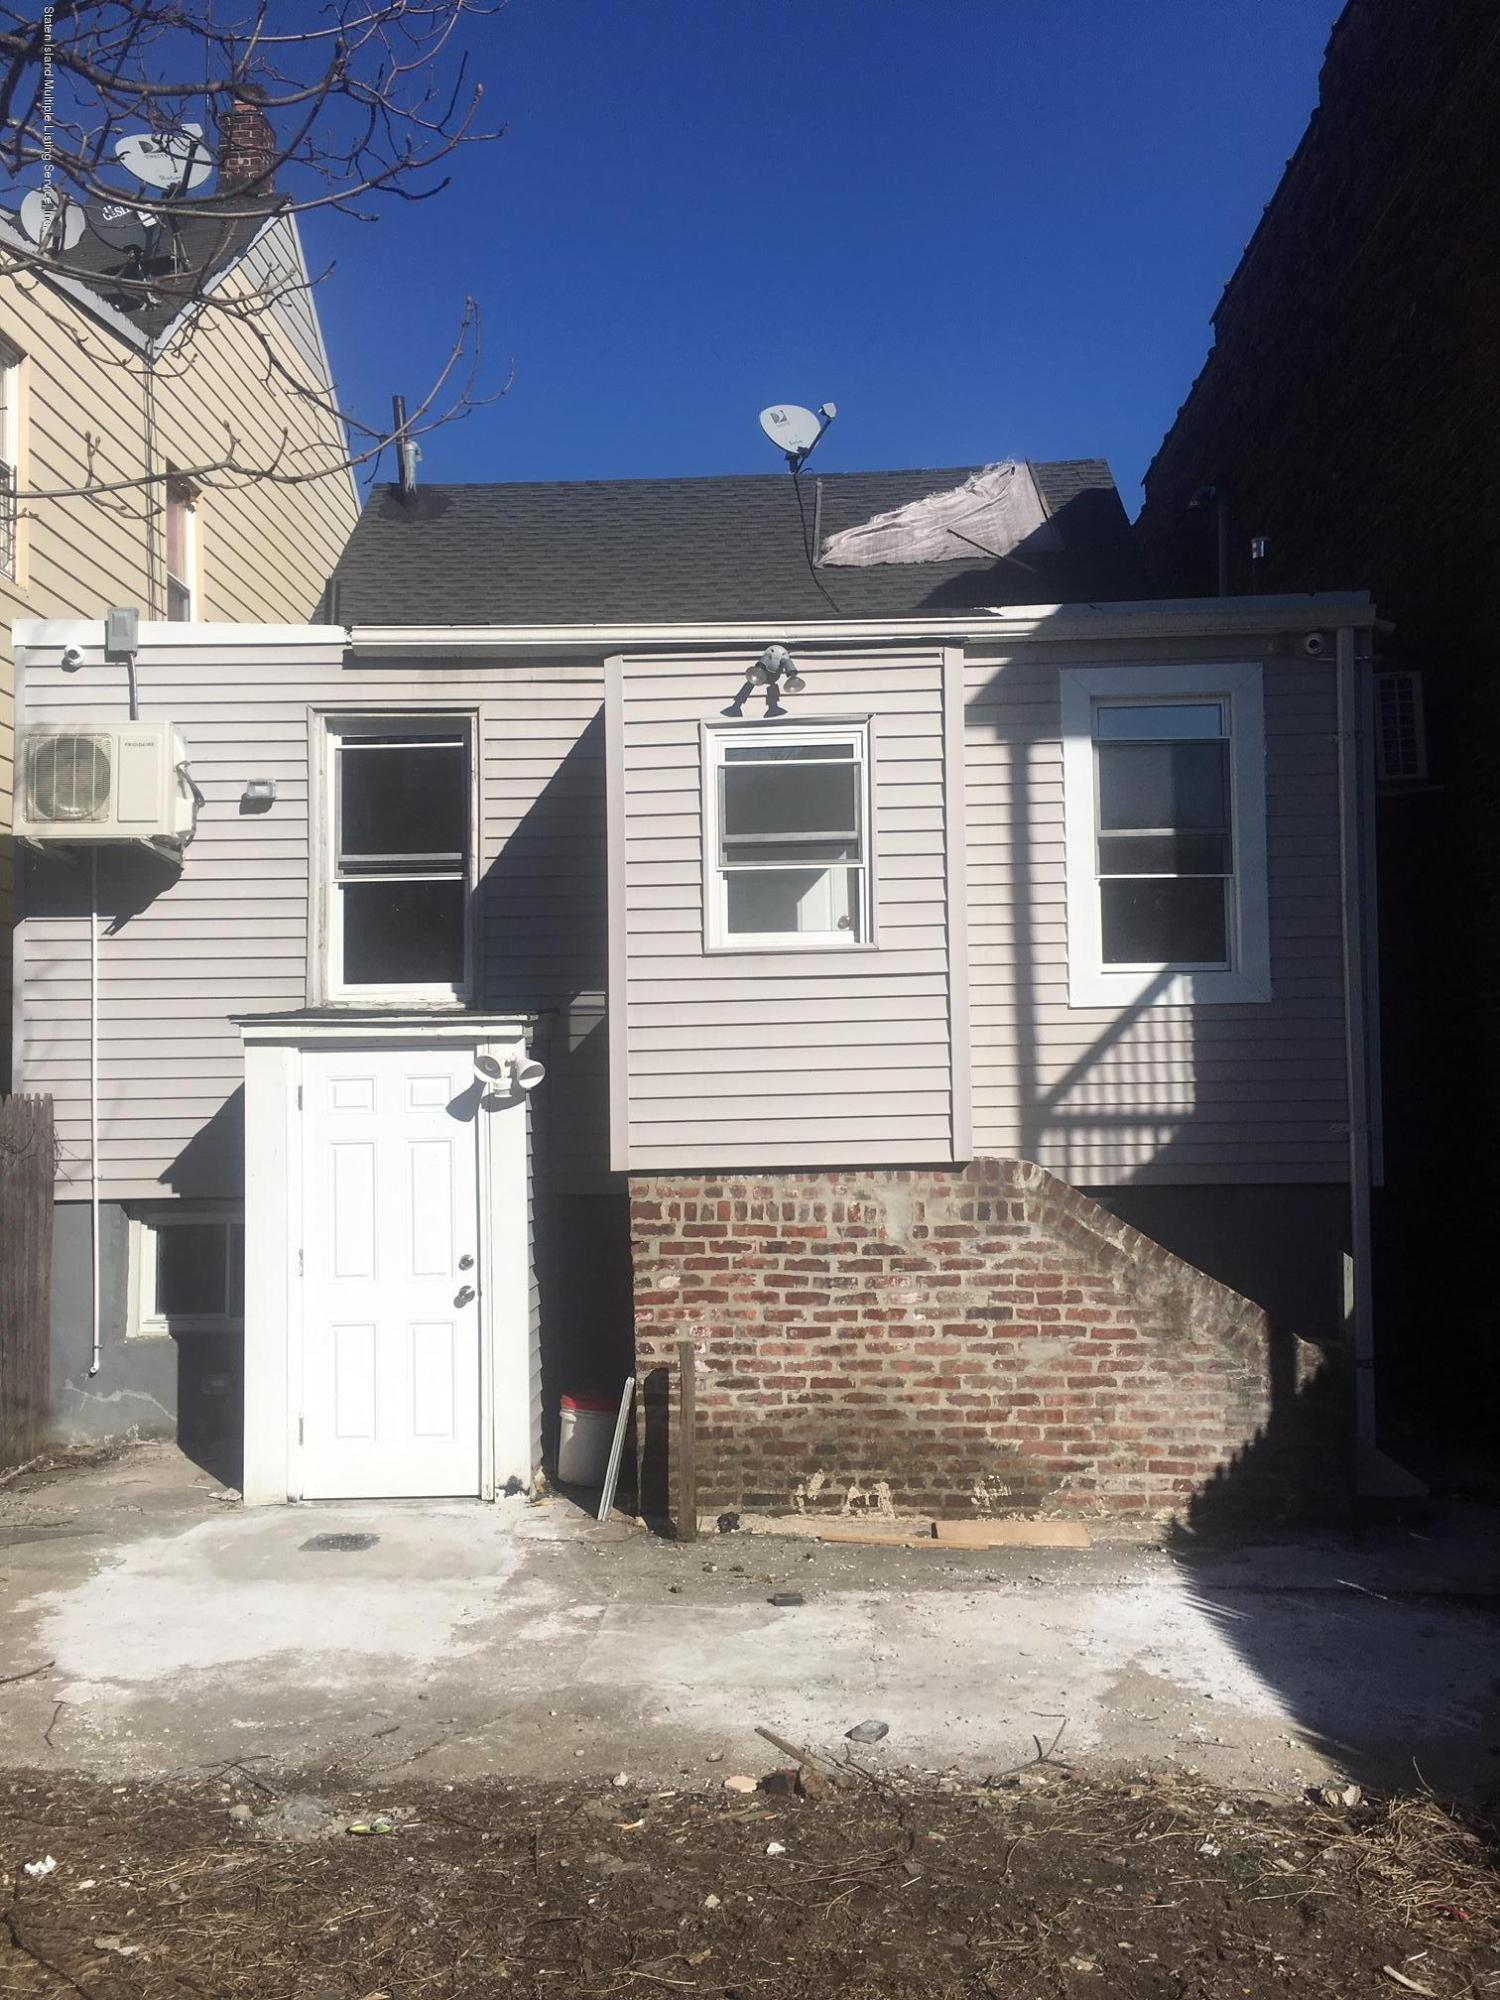 Single Family - Detached 18 Cedar Street  Staten Island, NY 10304, MLS-1126331-12